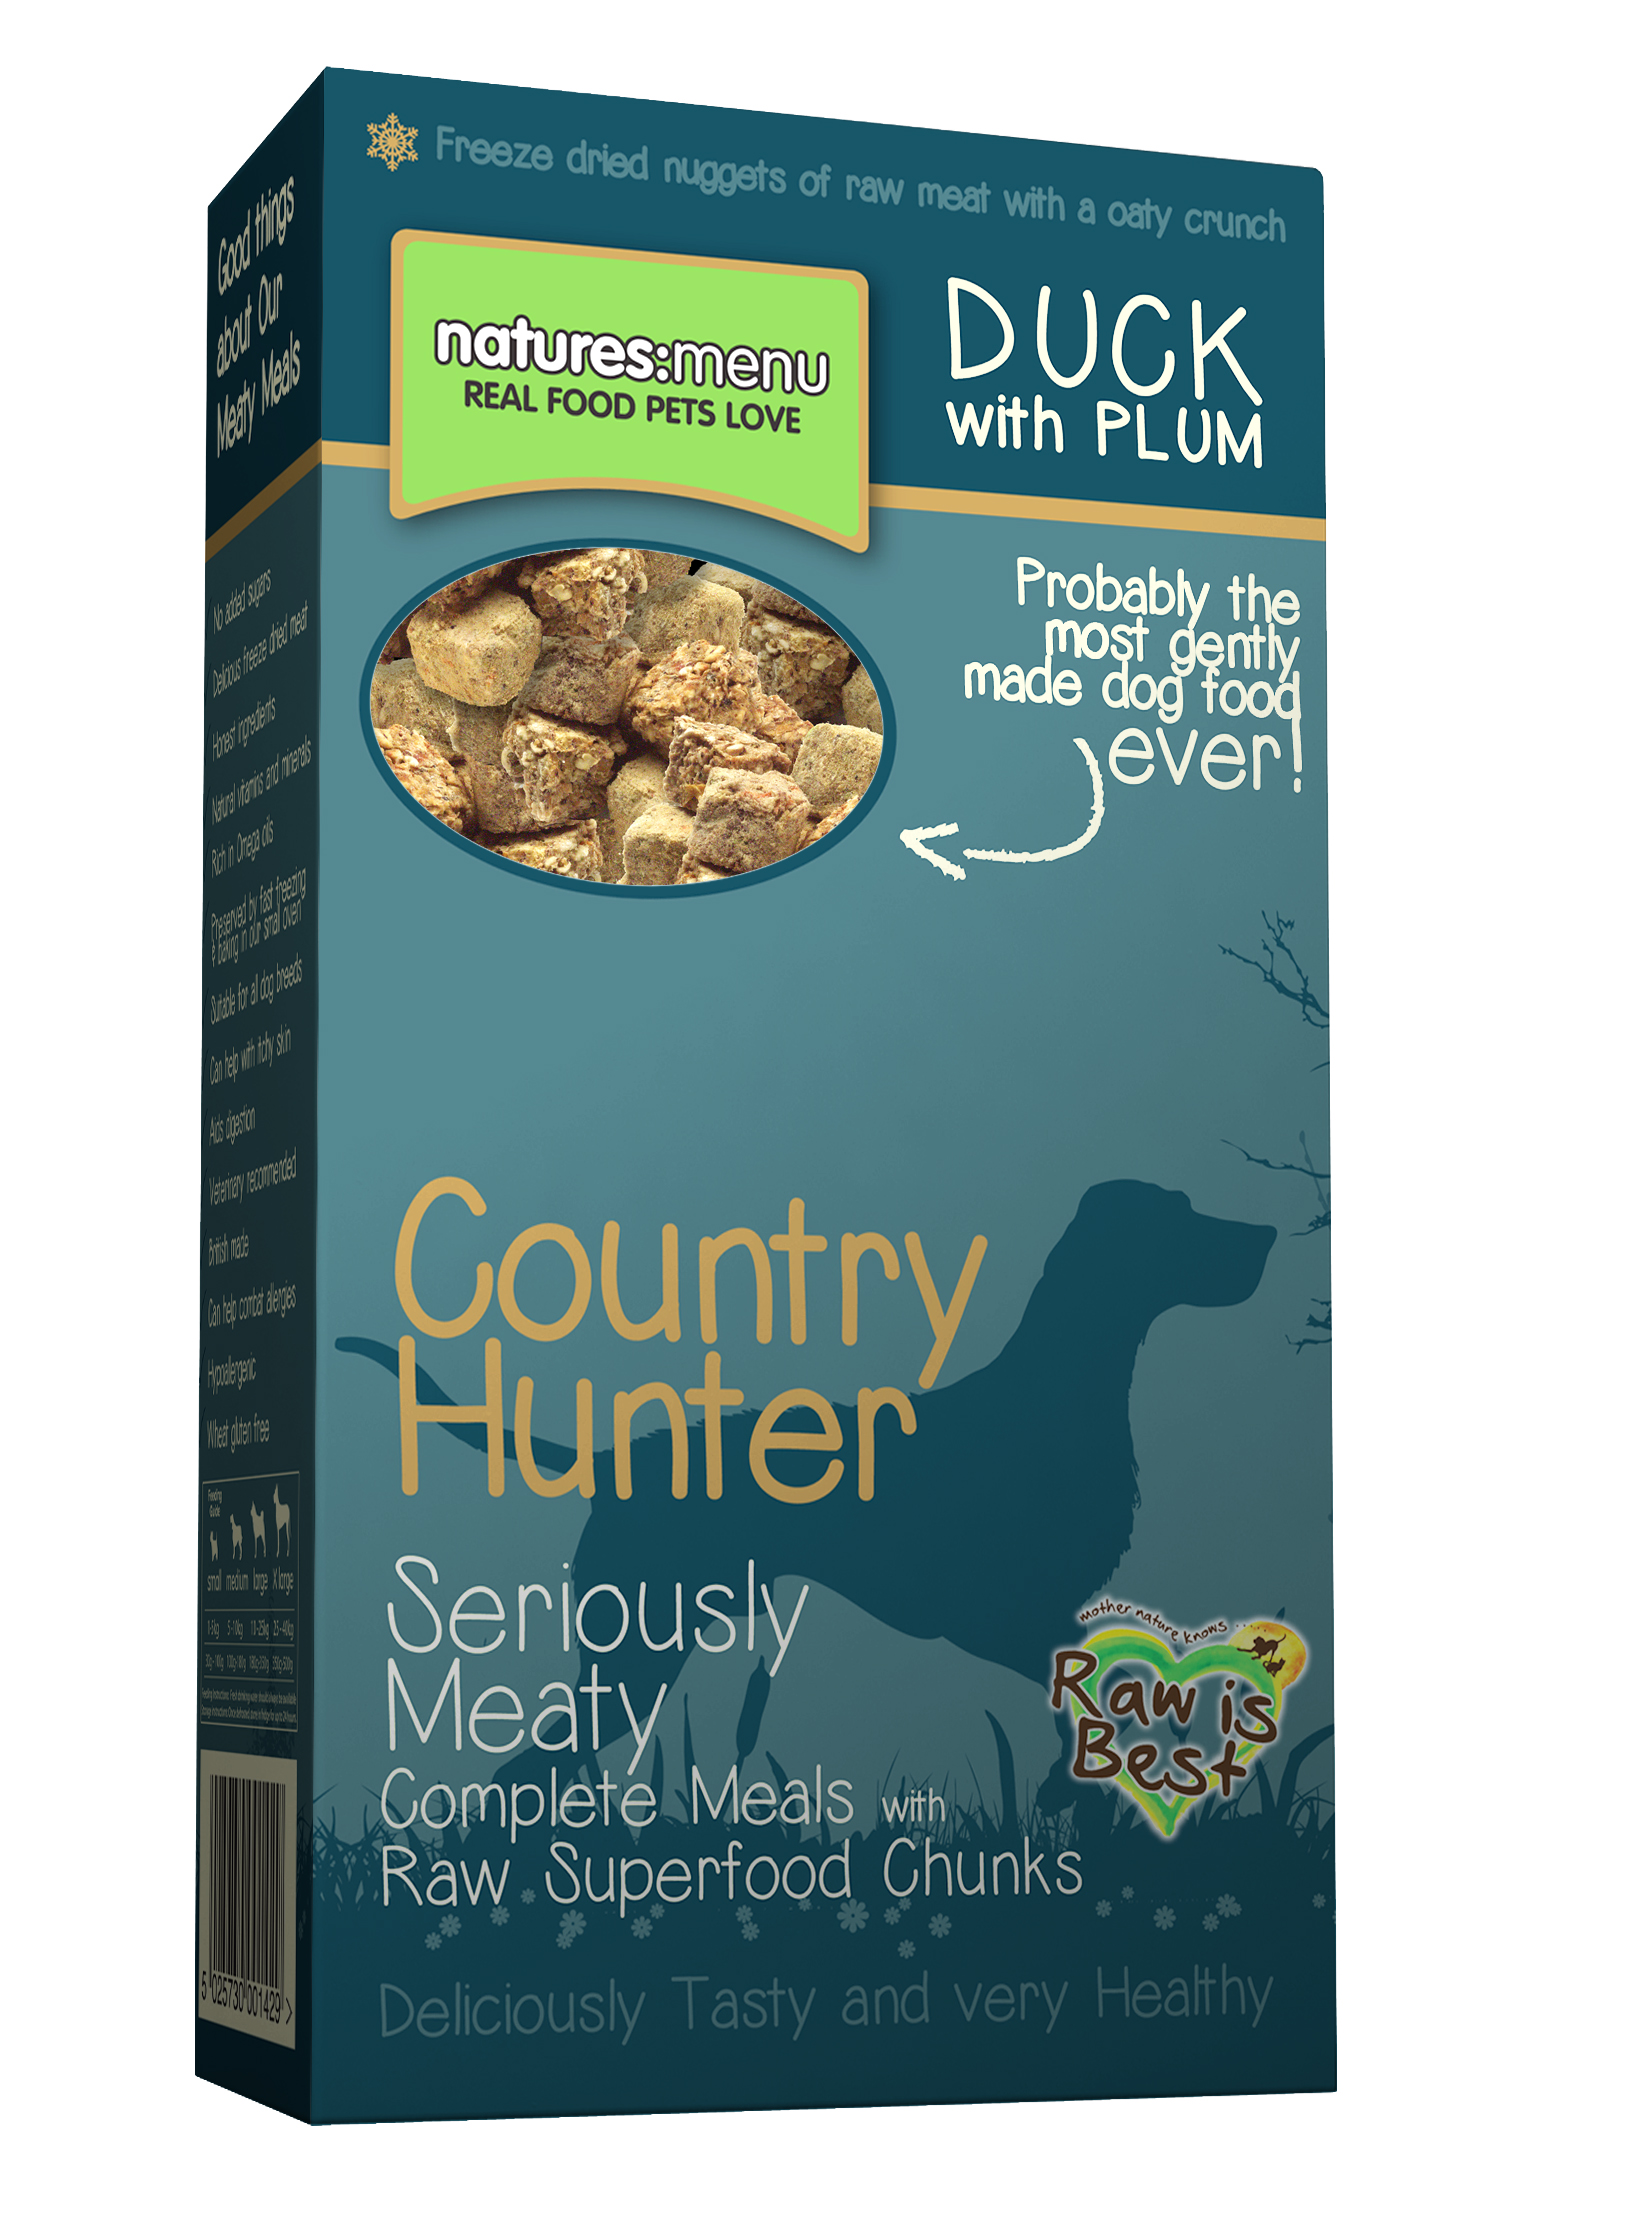 Country Hunter Dog Food Reviews